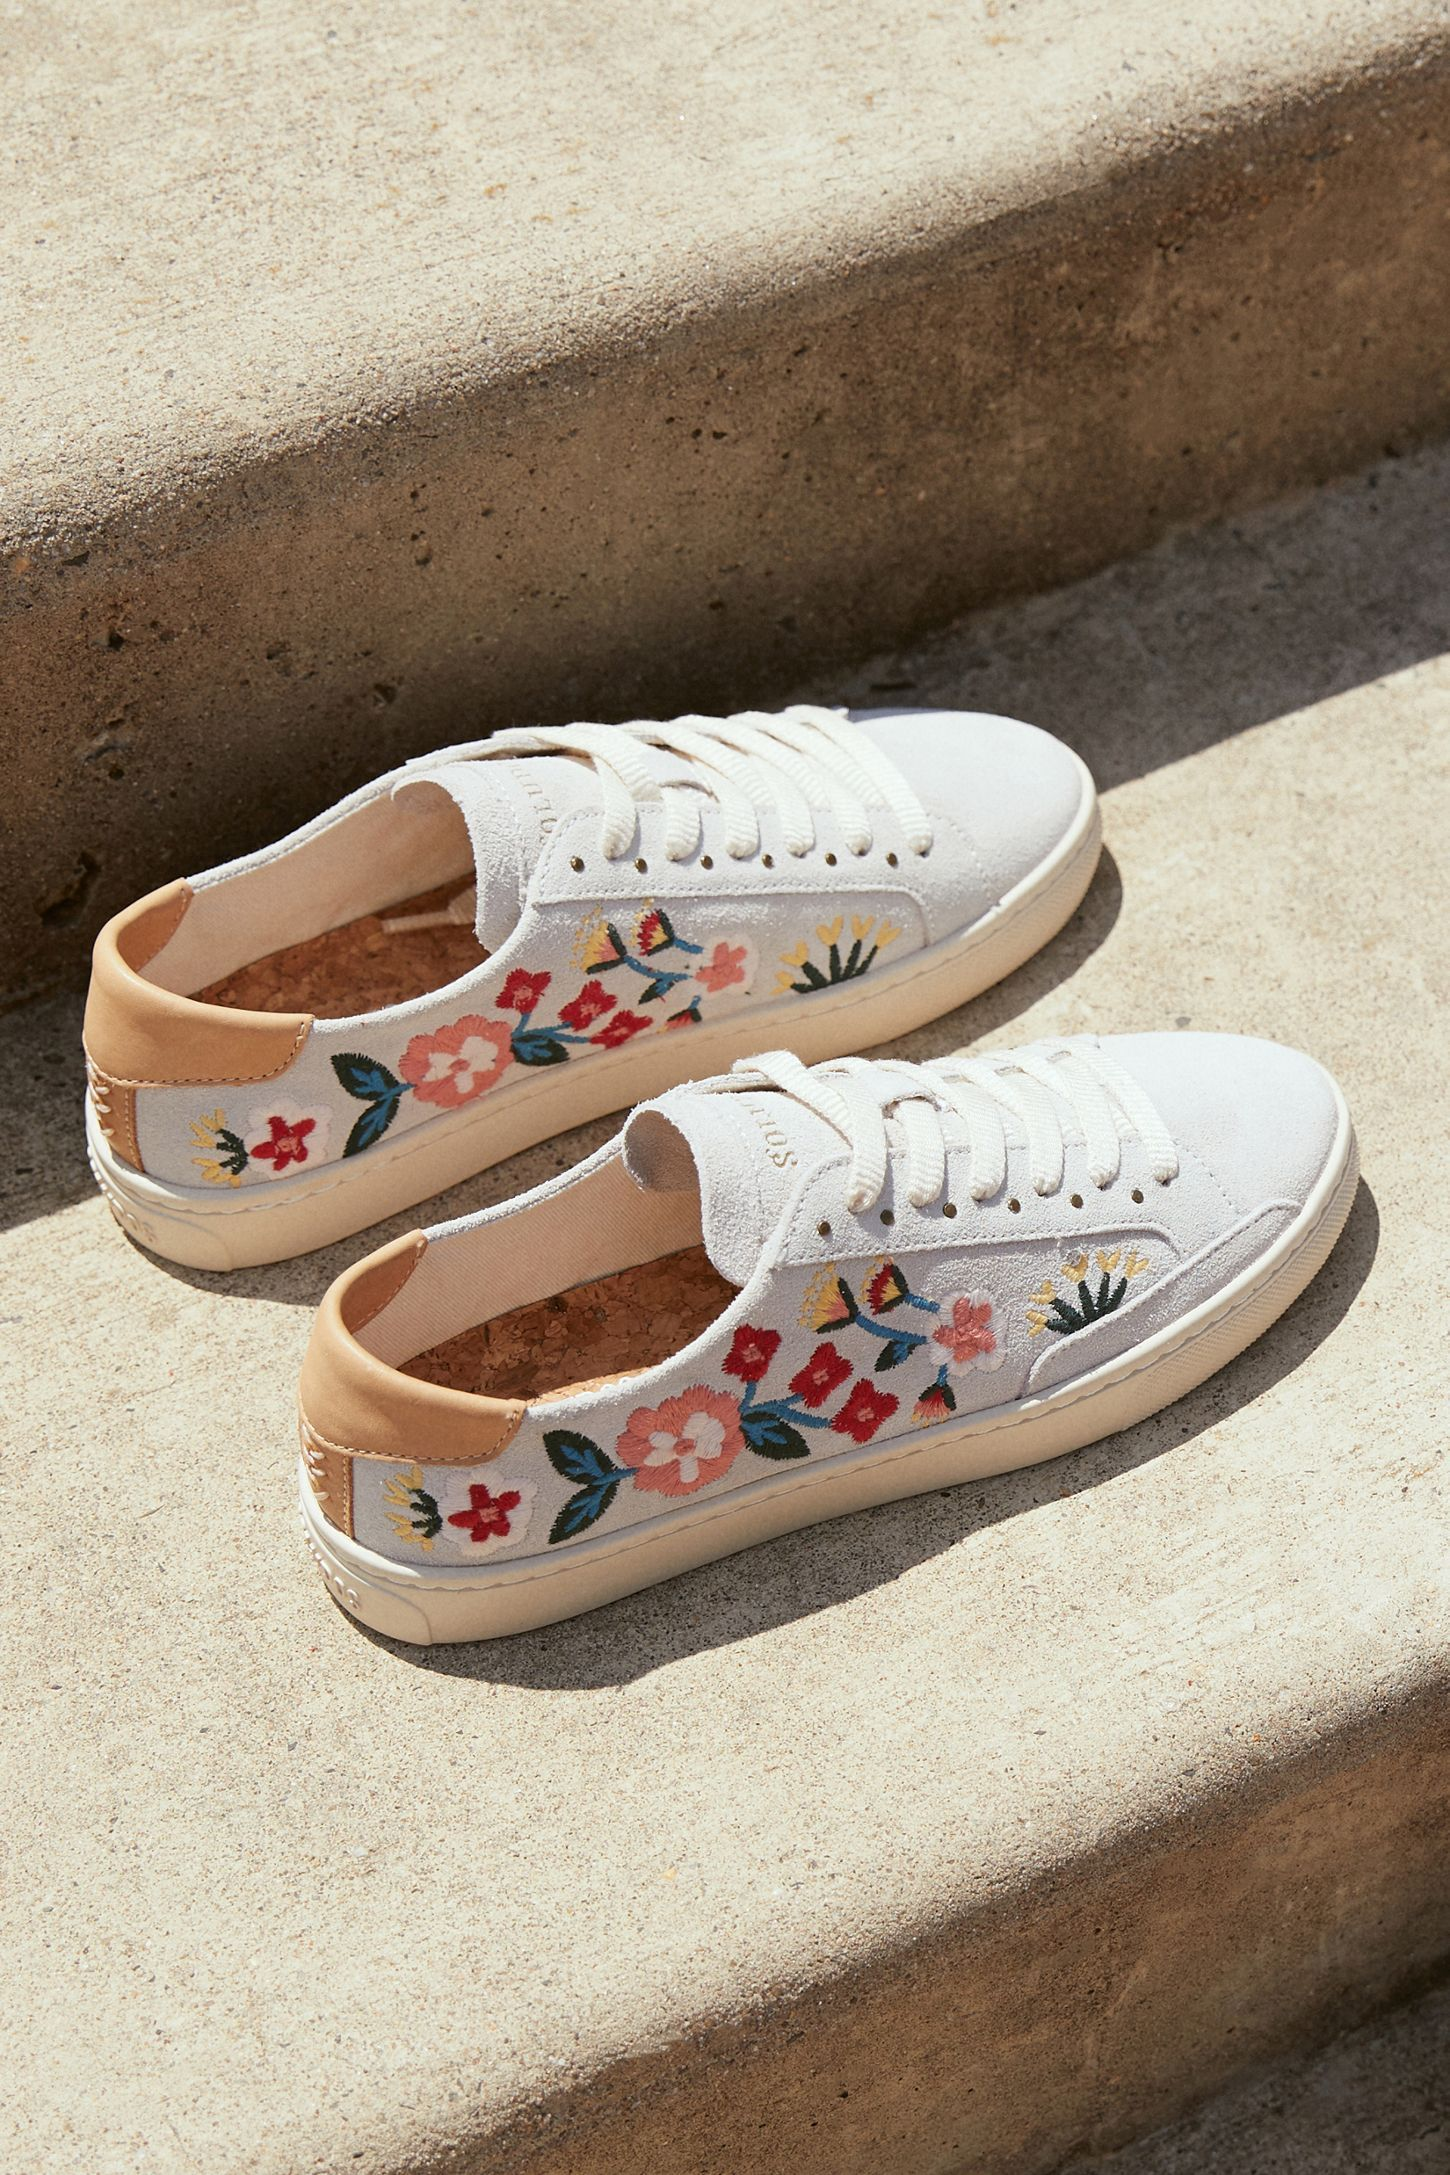 Anthropology $128. Suede Soludos x